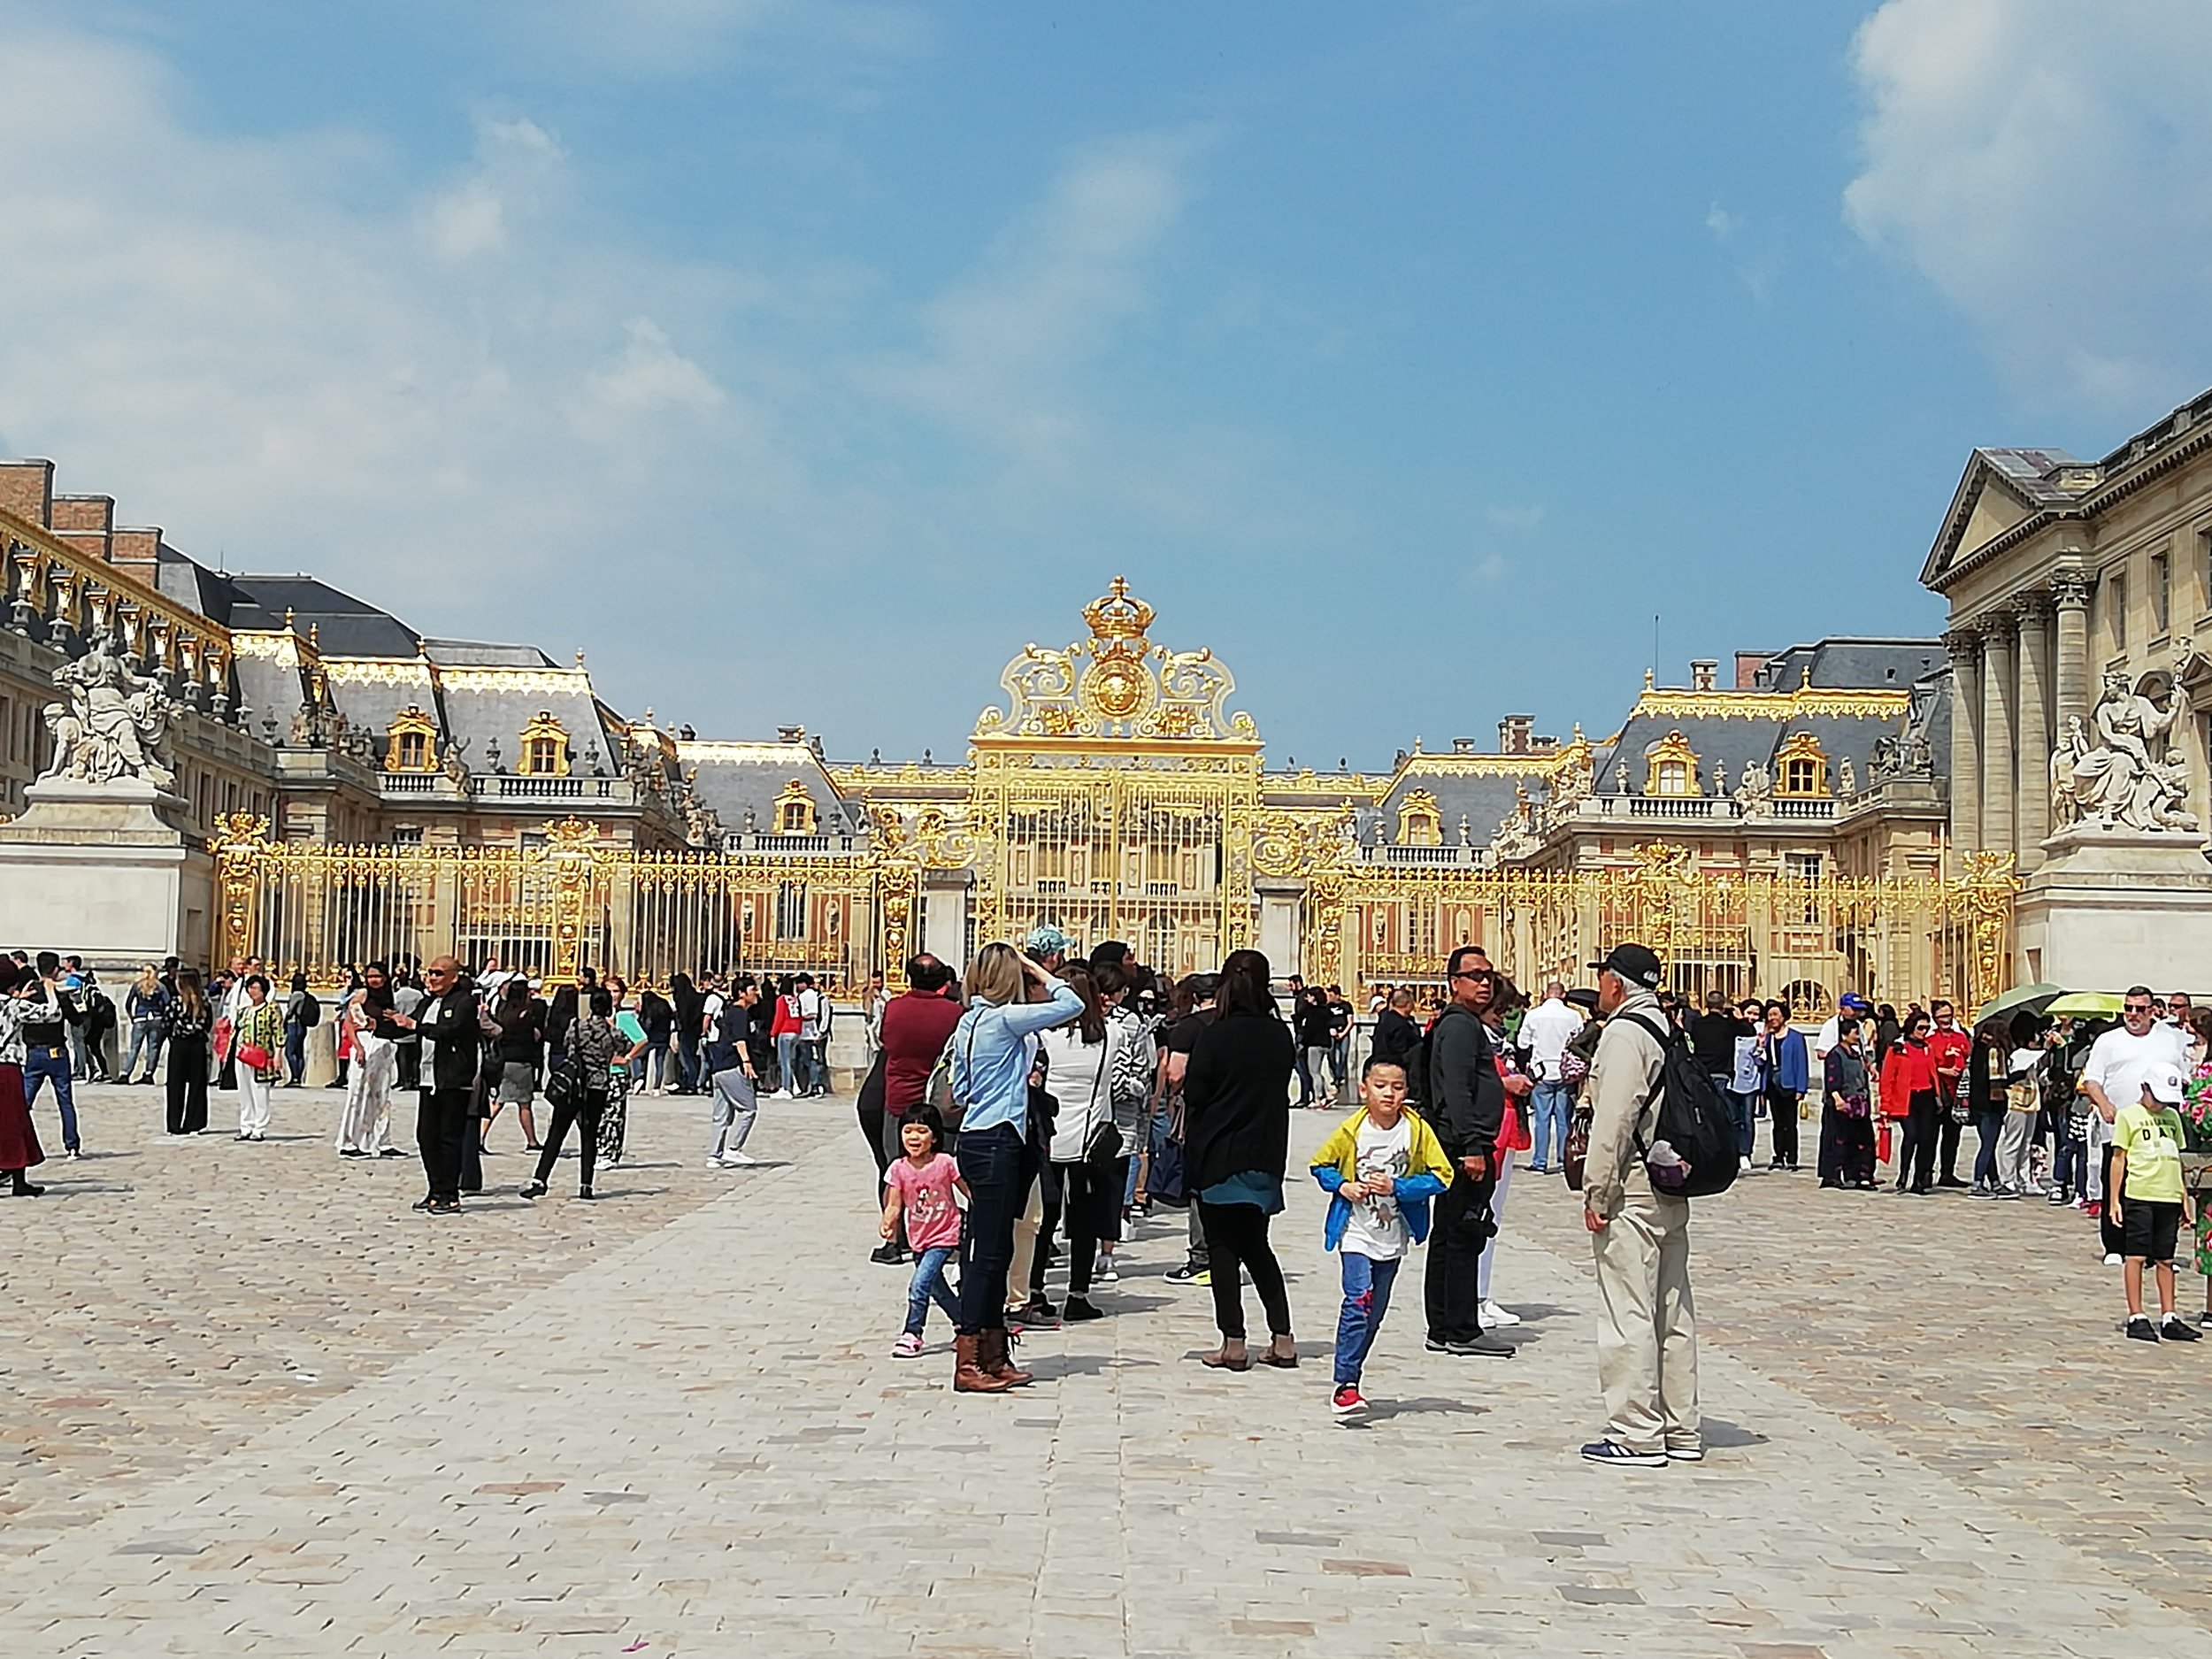 The quiet time at Palace of Versailles